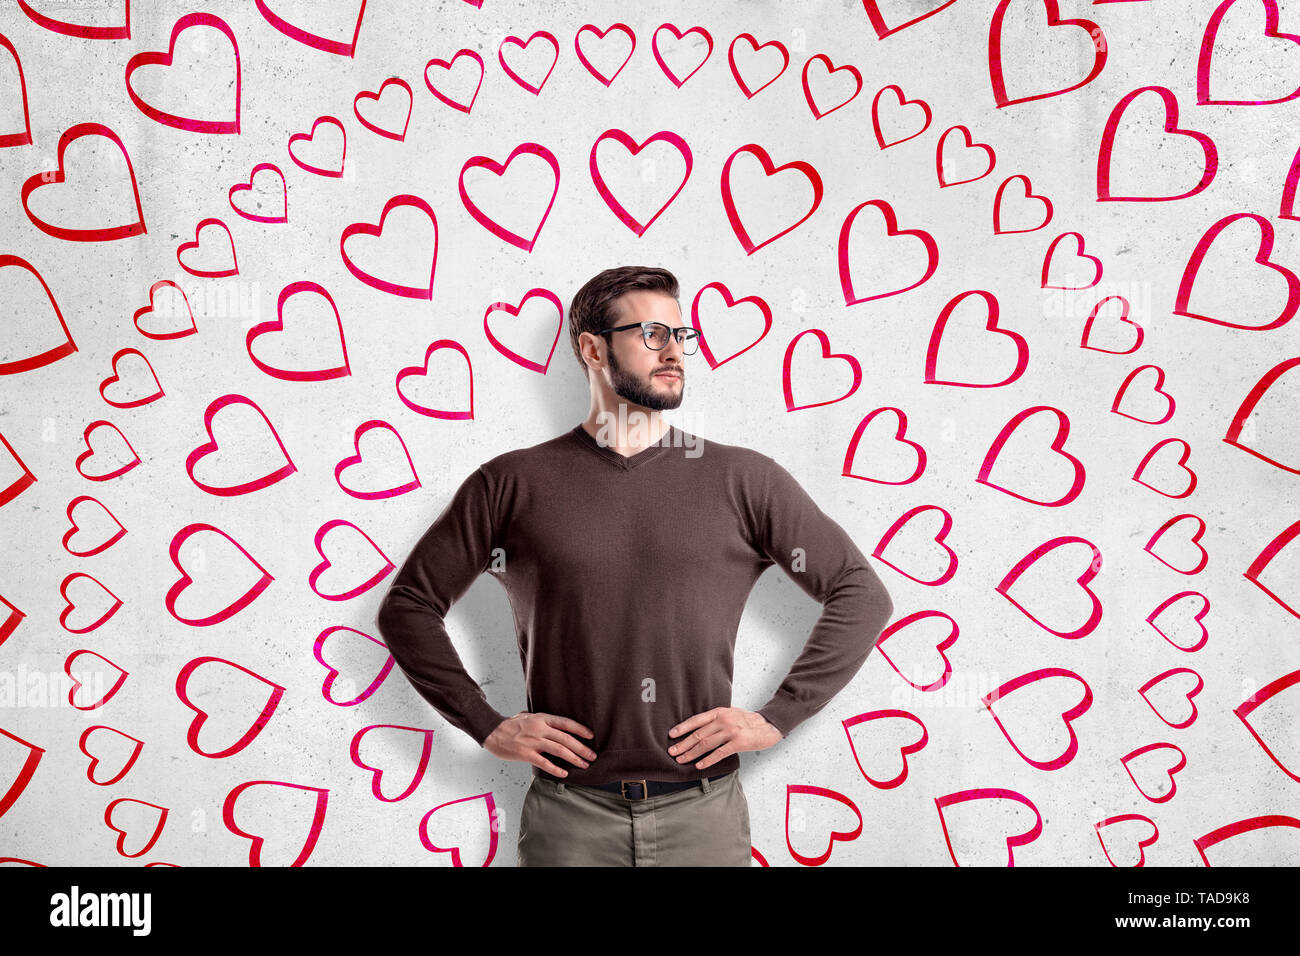 Handsome young man wearing glasses, standing with hands on waist, looking away, at wall with circular pattern of many hand-drawn hearts. St. Valentine - Stock Image